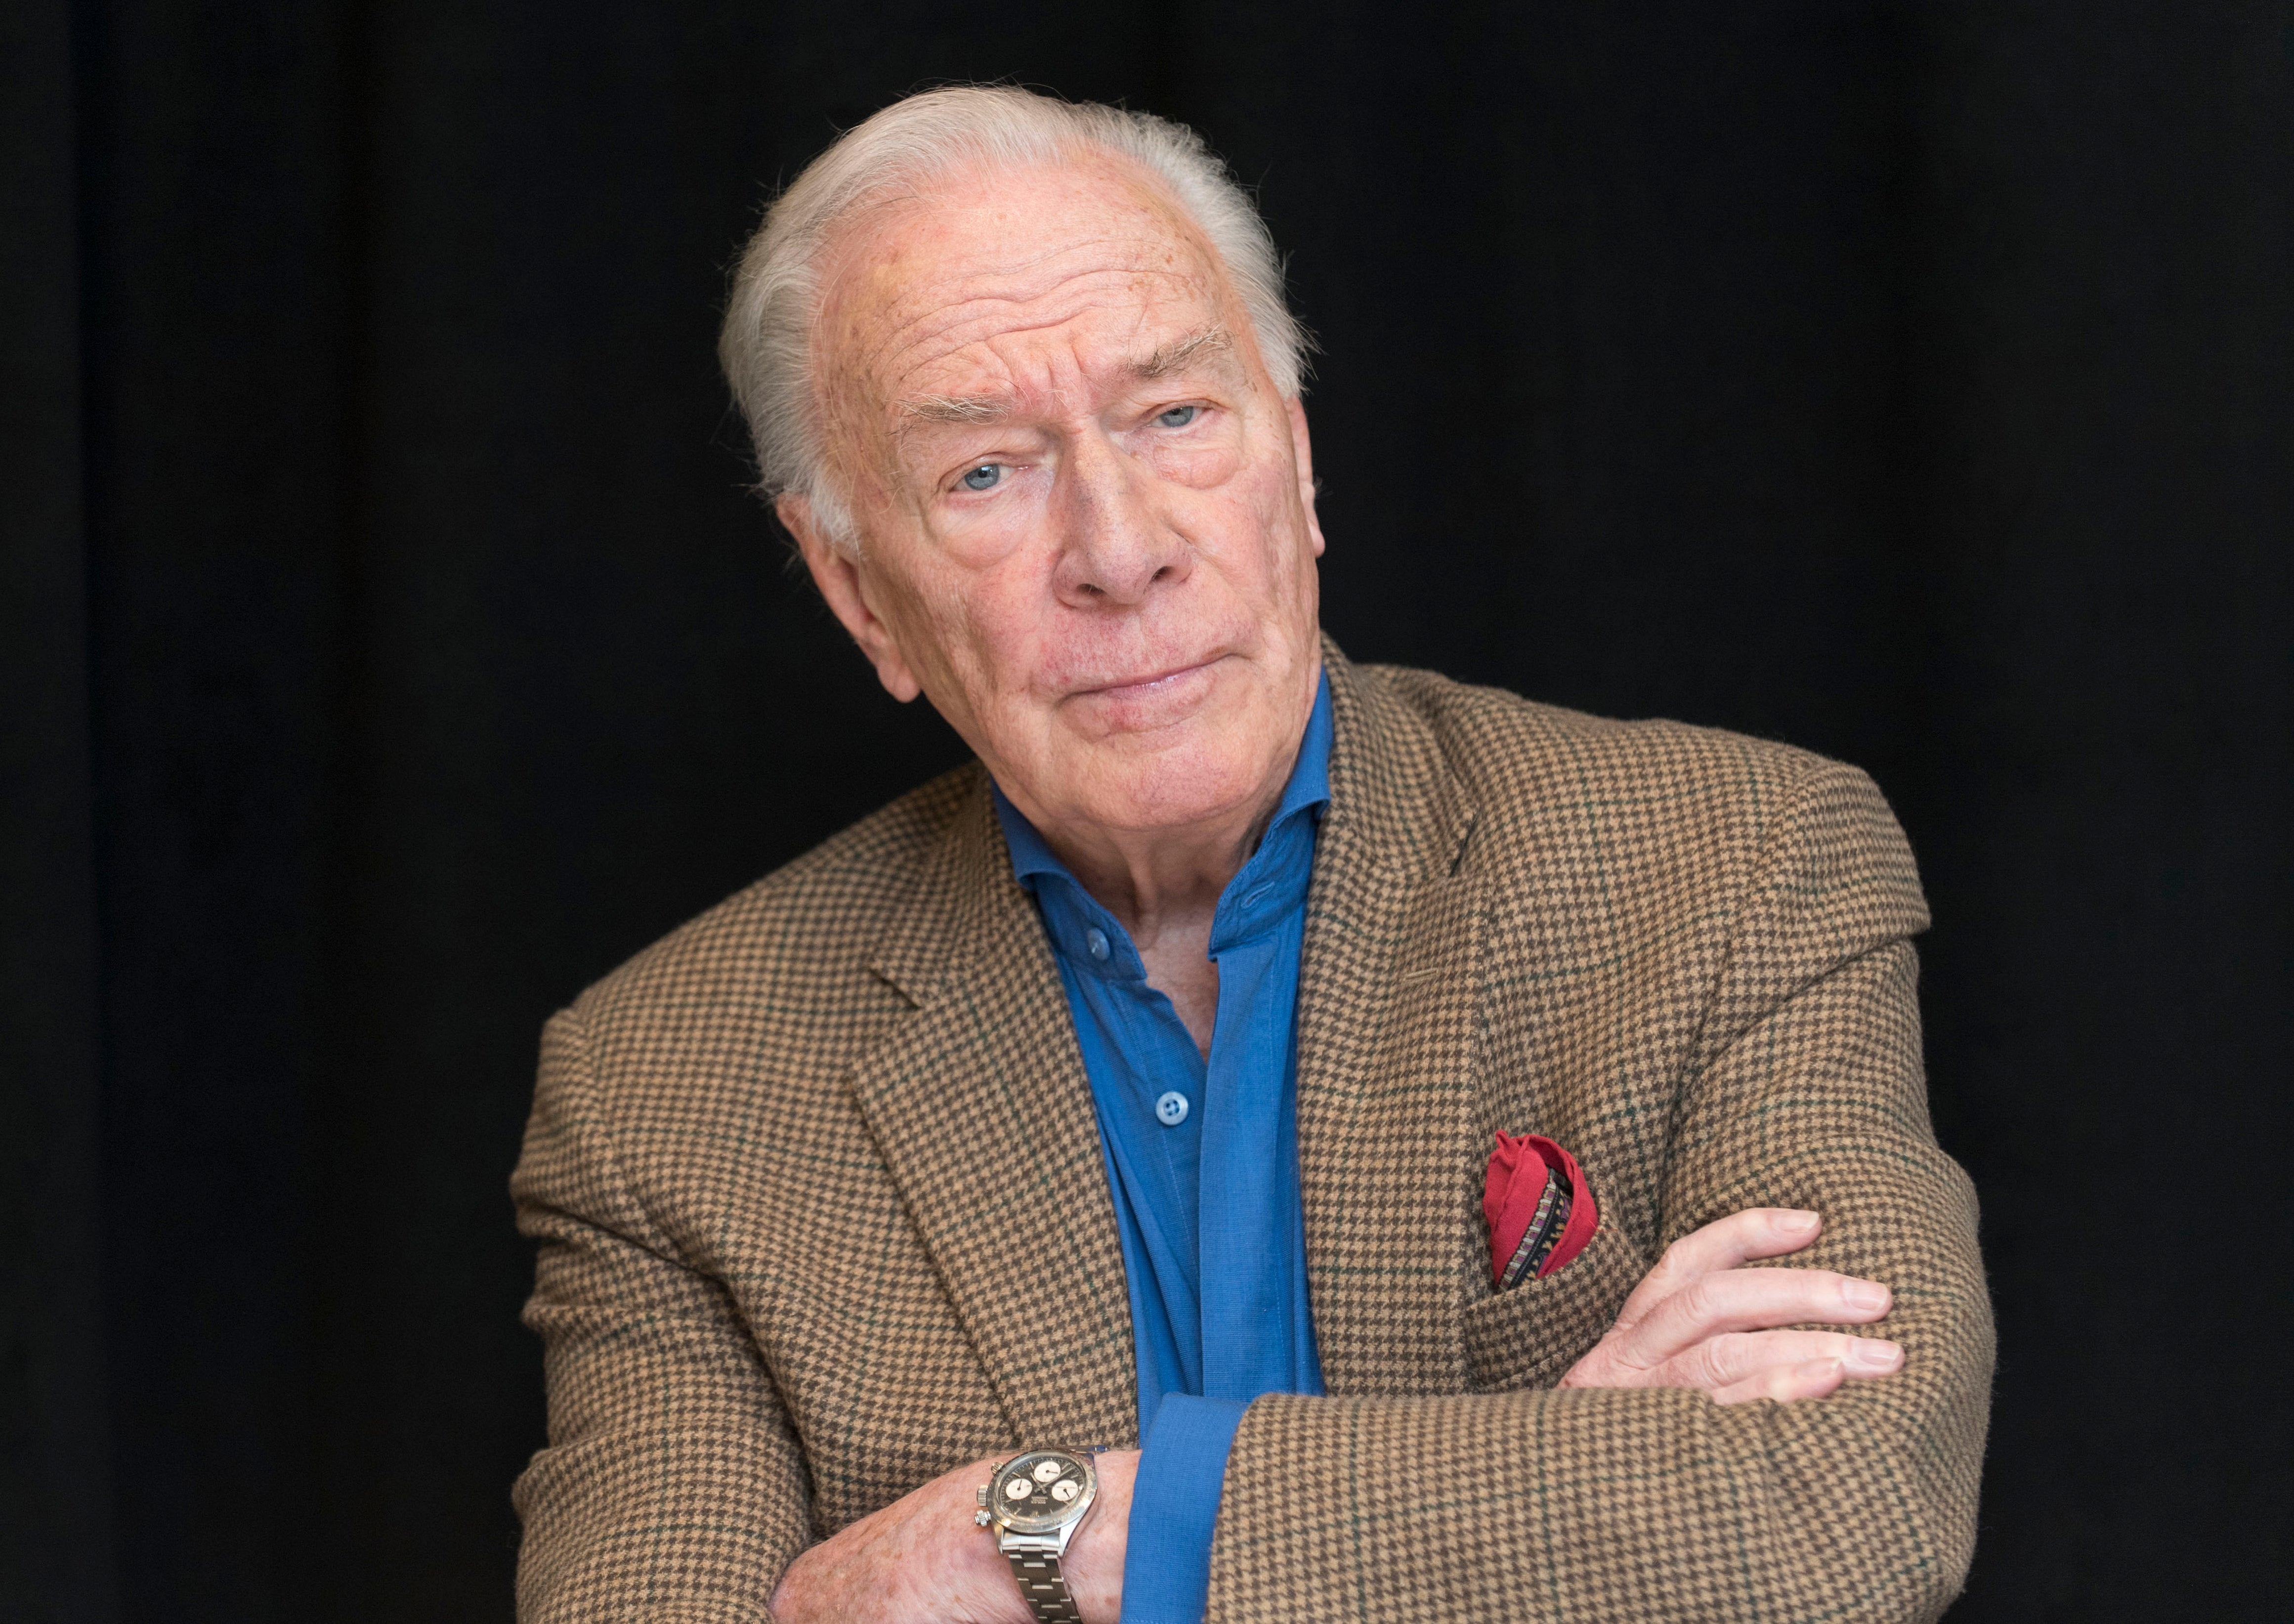 Discussion on this topic: Laura Spencer (actress), christopher-plummer/